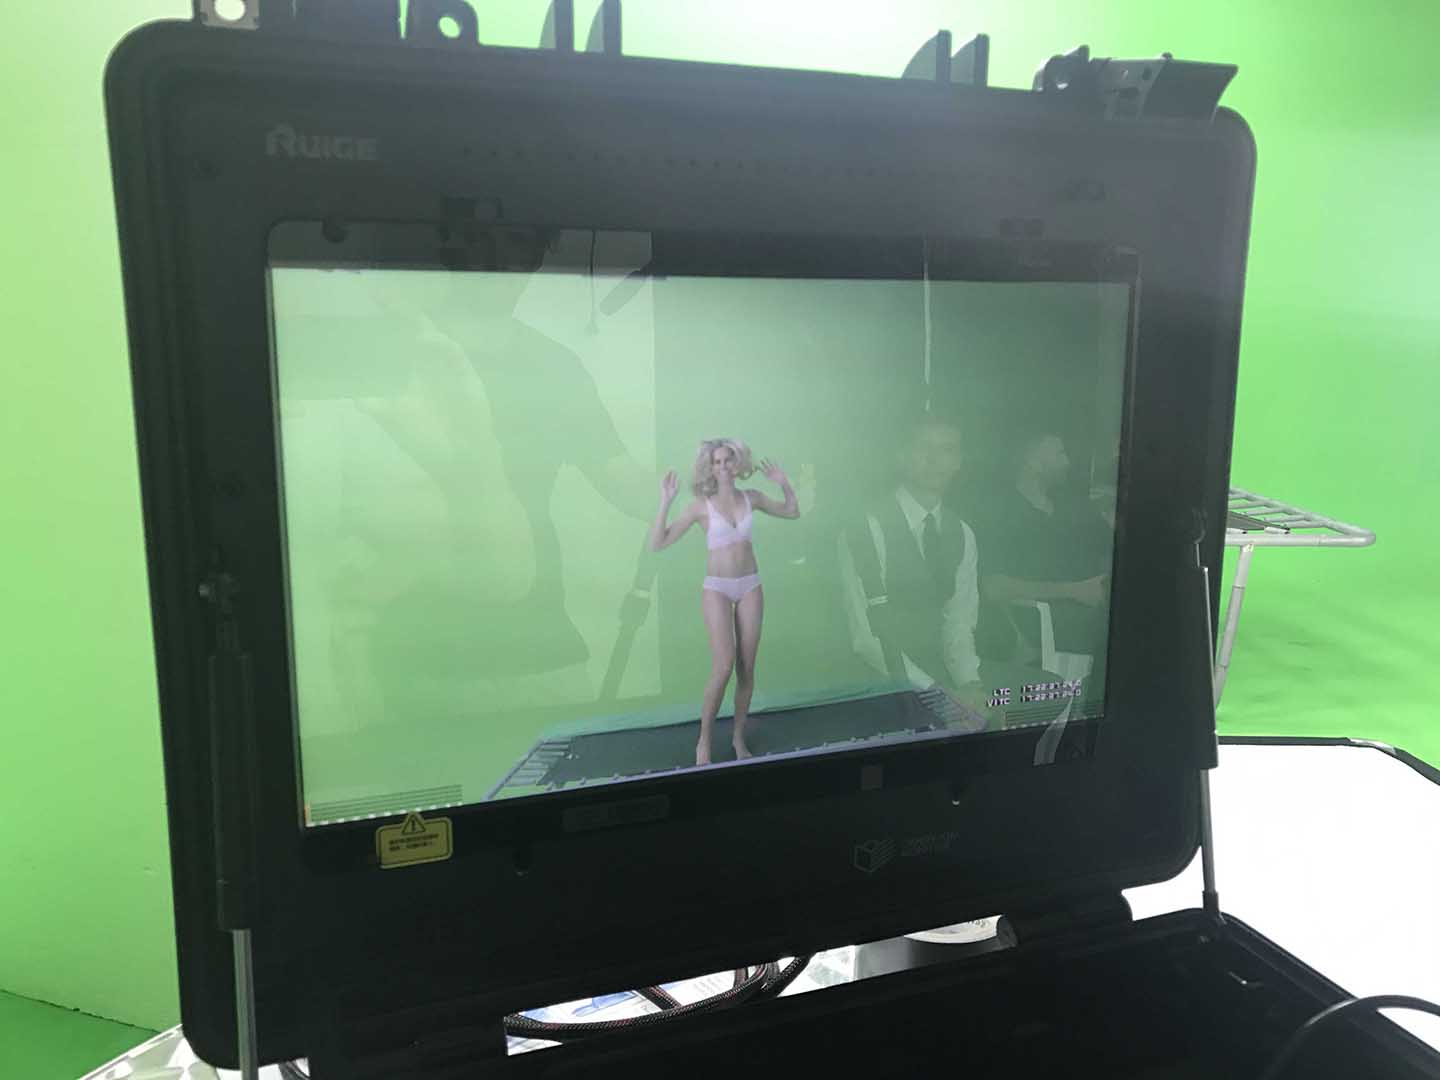 Through a monitor we see a female model on a trampoline in a green screen studio.